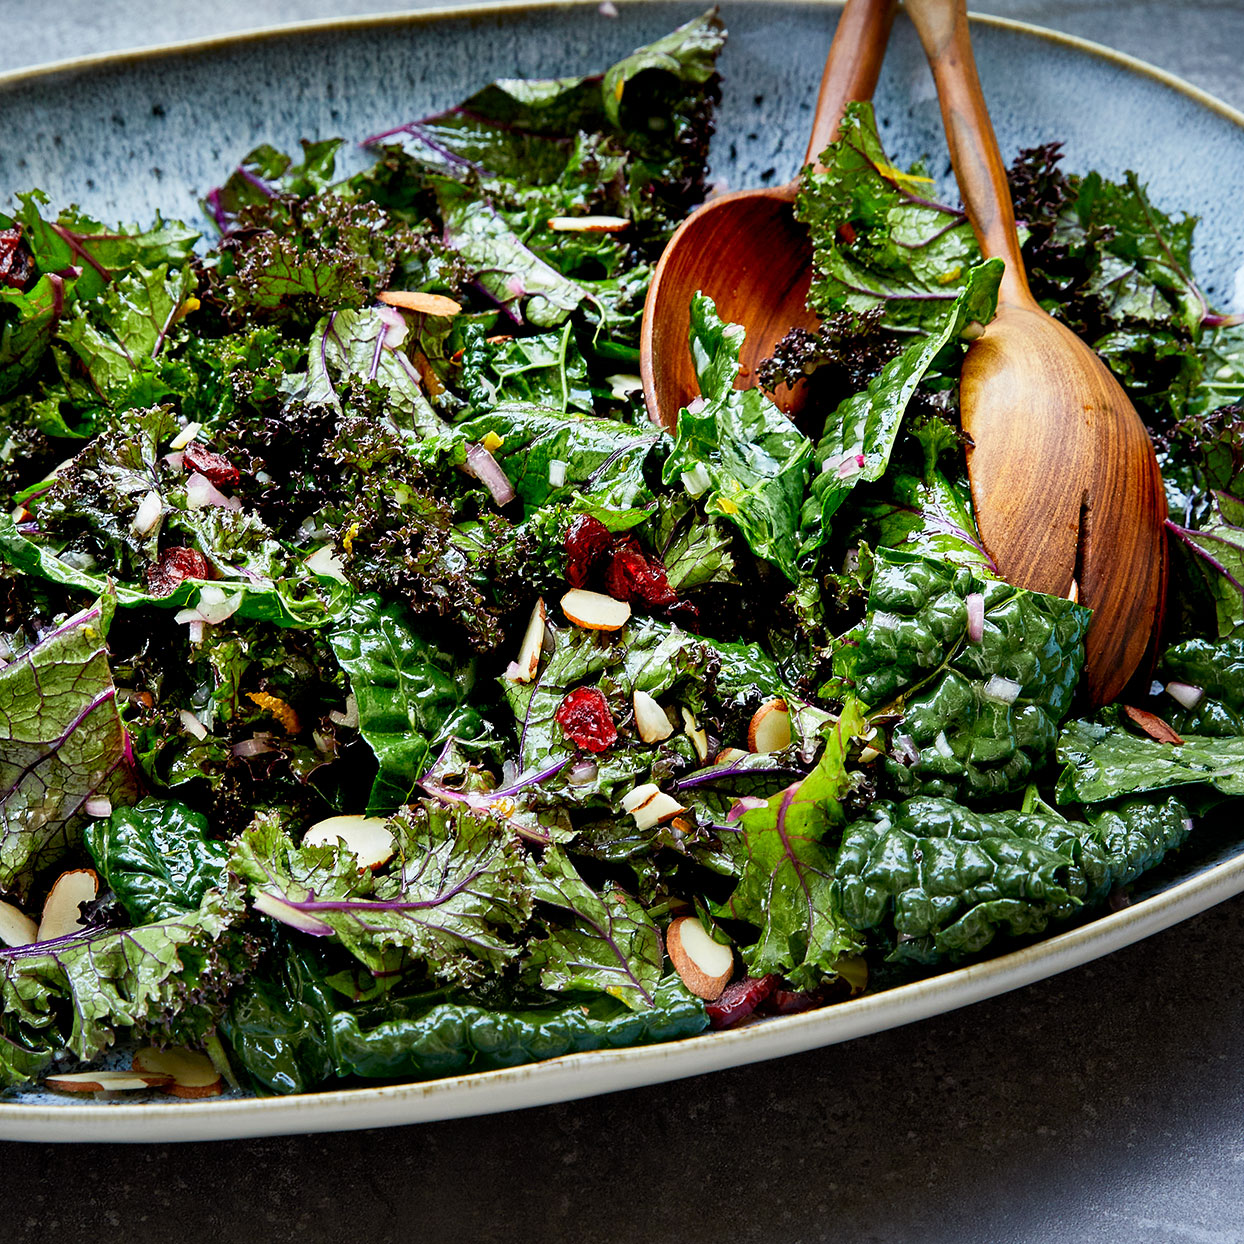 This easy holiday salad gets its flavor from a sweet citrus dressing that's infused into the kale by massaging the greens and the dressing together with your hands. We like a mix of kale for this recipe, but any type of kale will work.